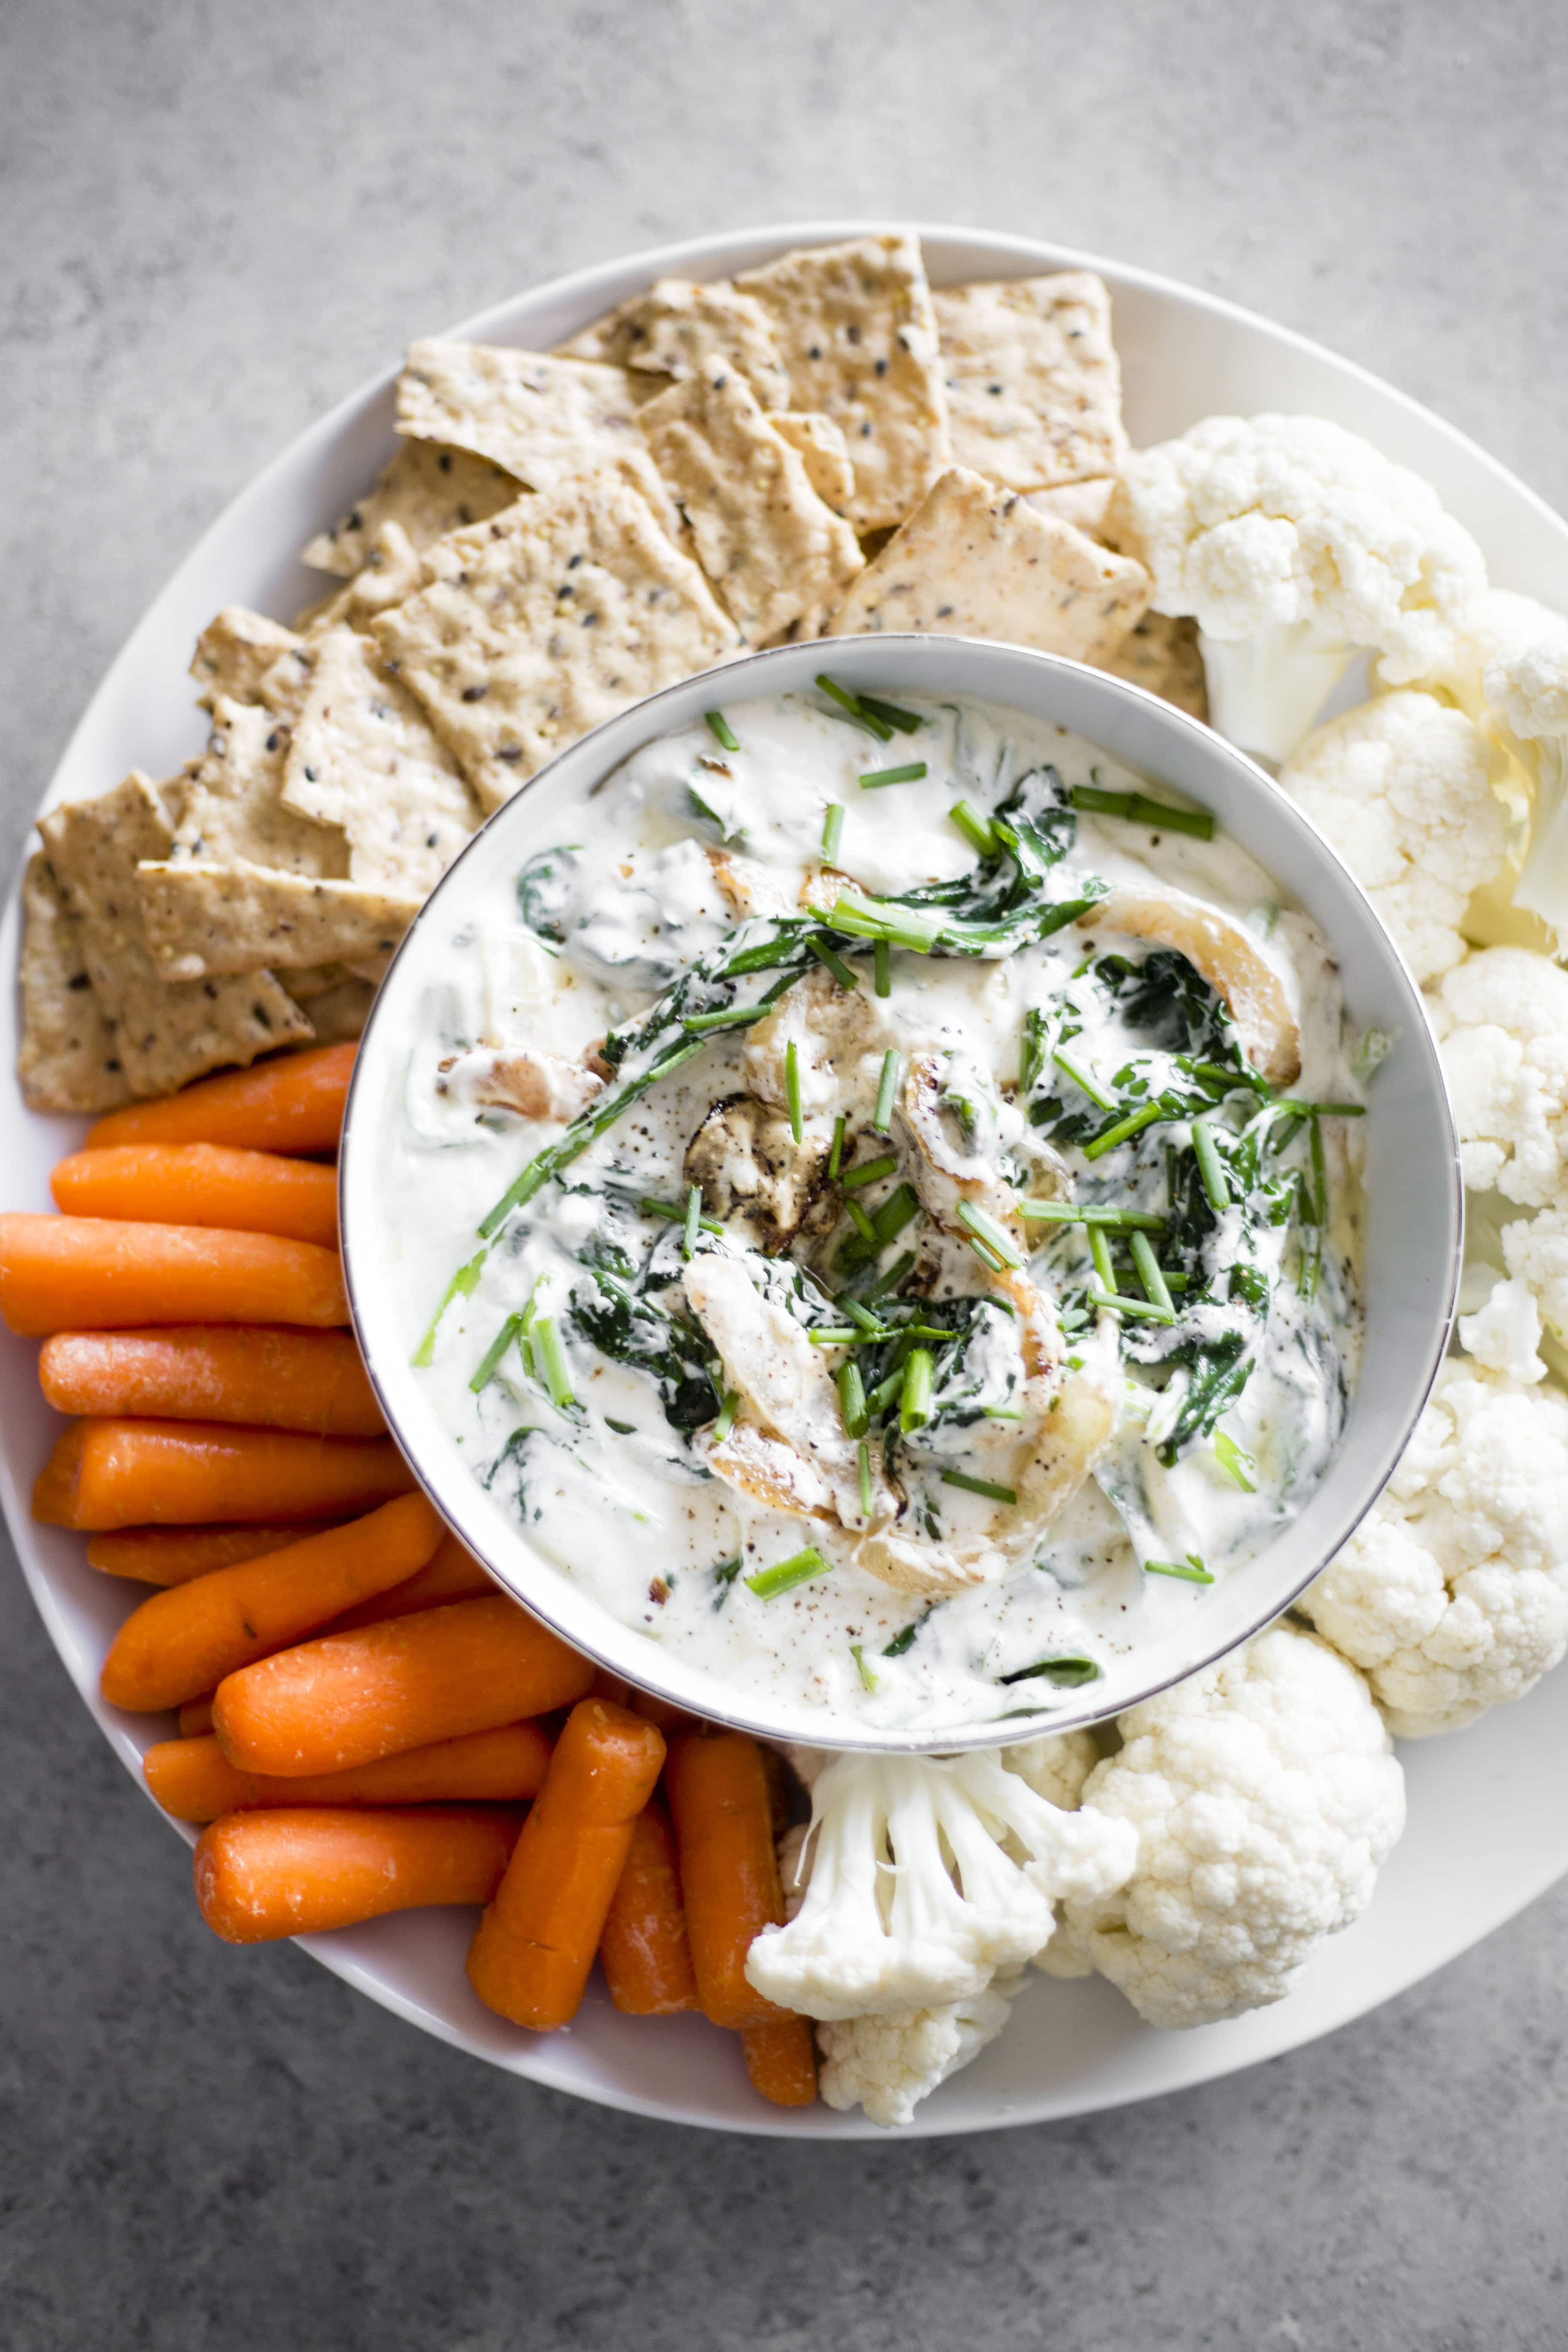 Spinach & Caramelized Onion Dip | A dip that tastes like caramelized onions and is secretly healthy! | thealmondeater.com